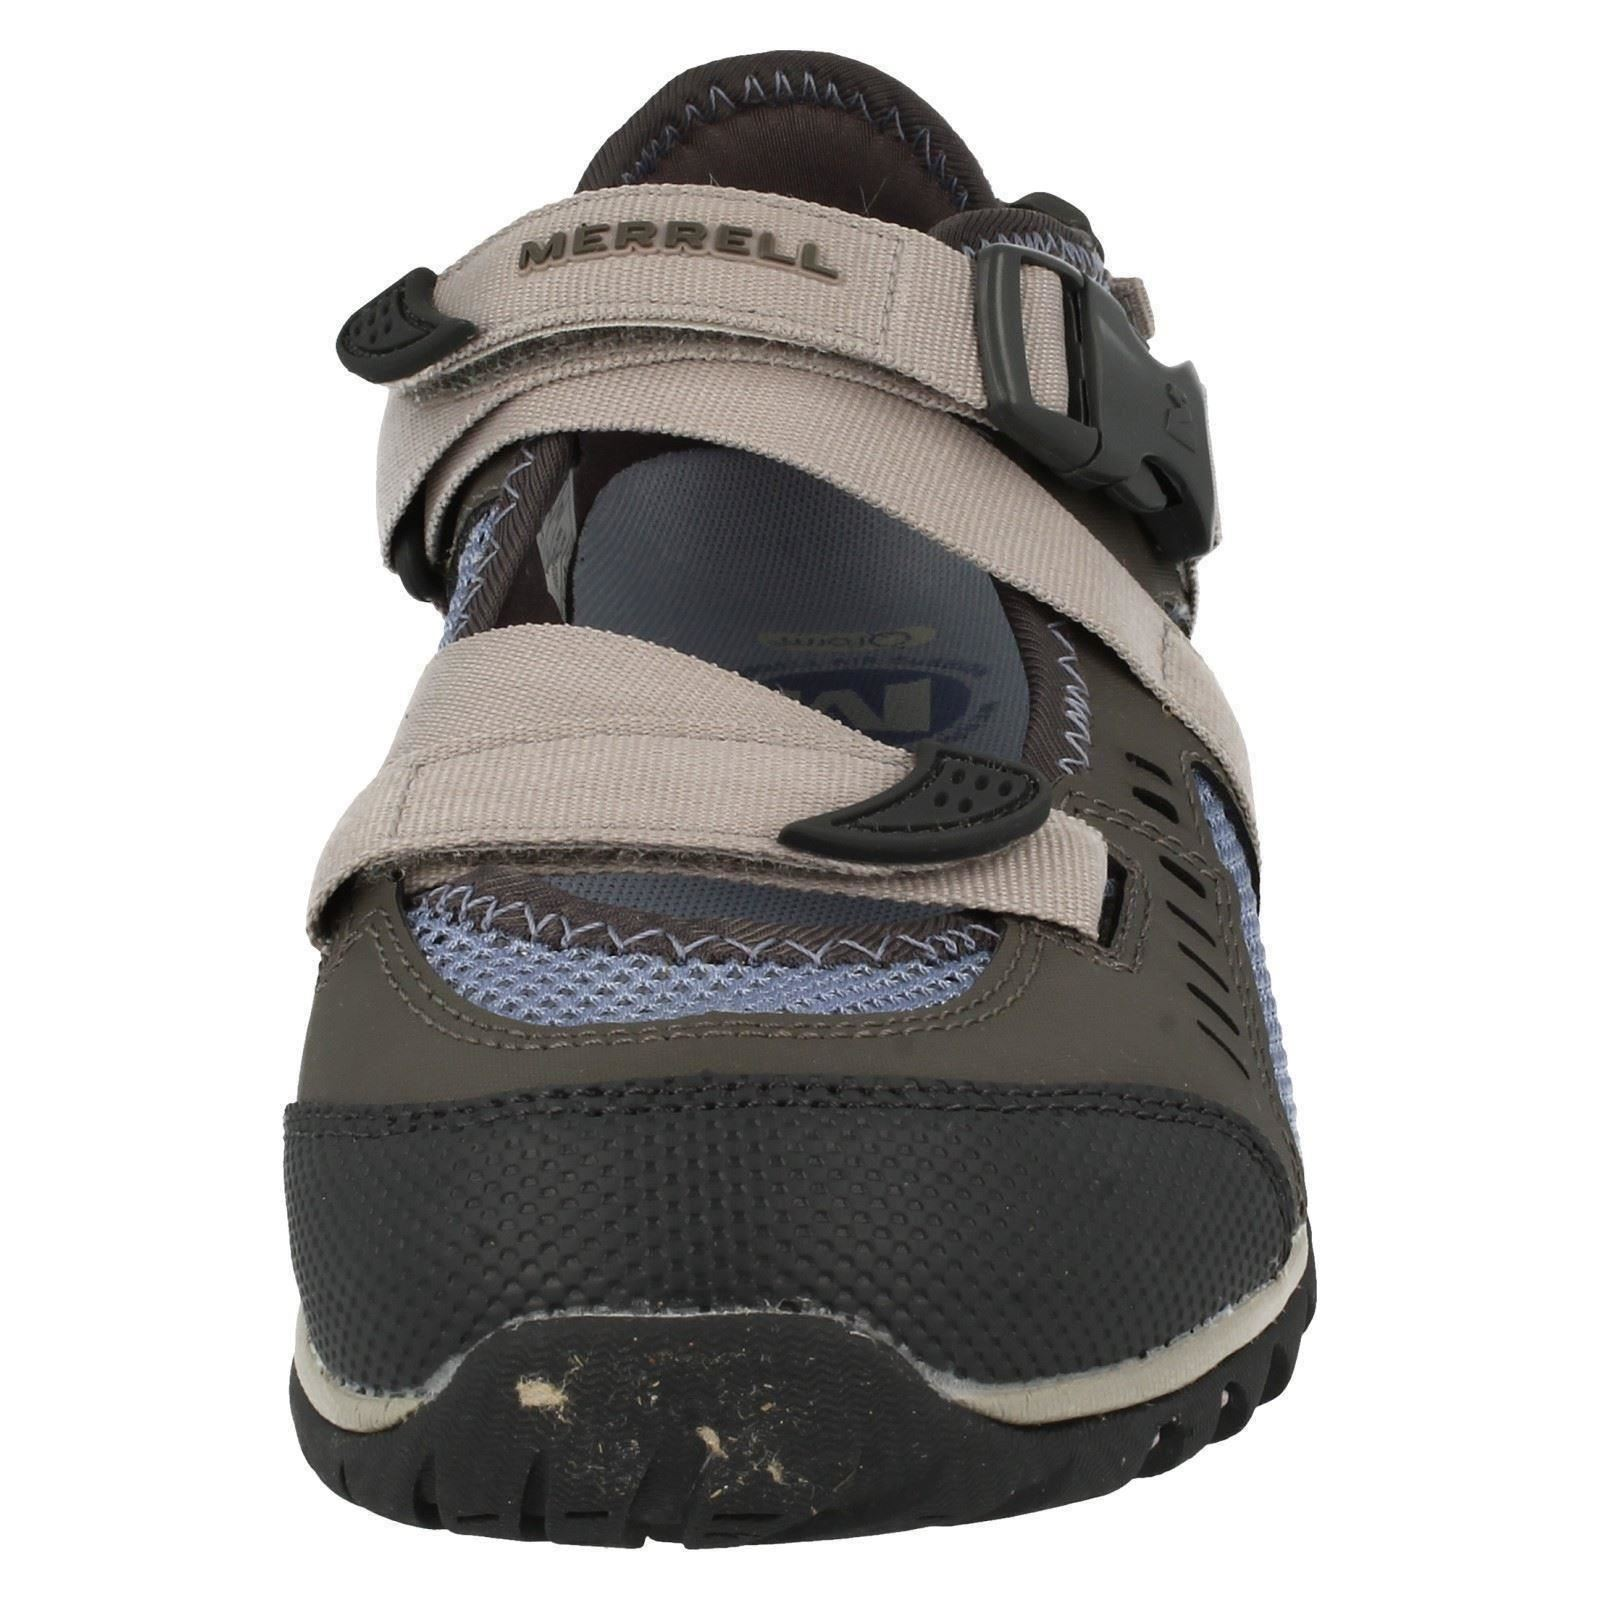 Ladies-Merrell-Buckle-Fastened-Casual-Shoes-Waterpro-Crystal-J82284 thumbnail 9